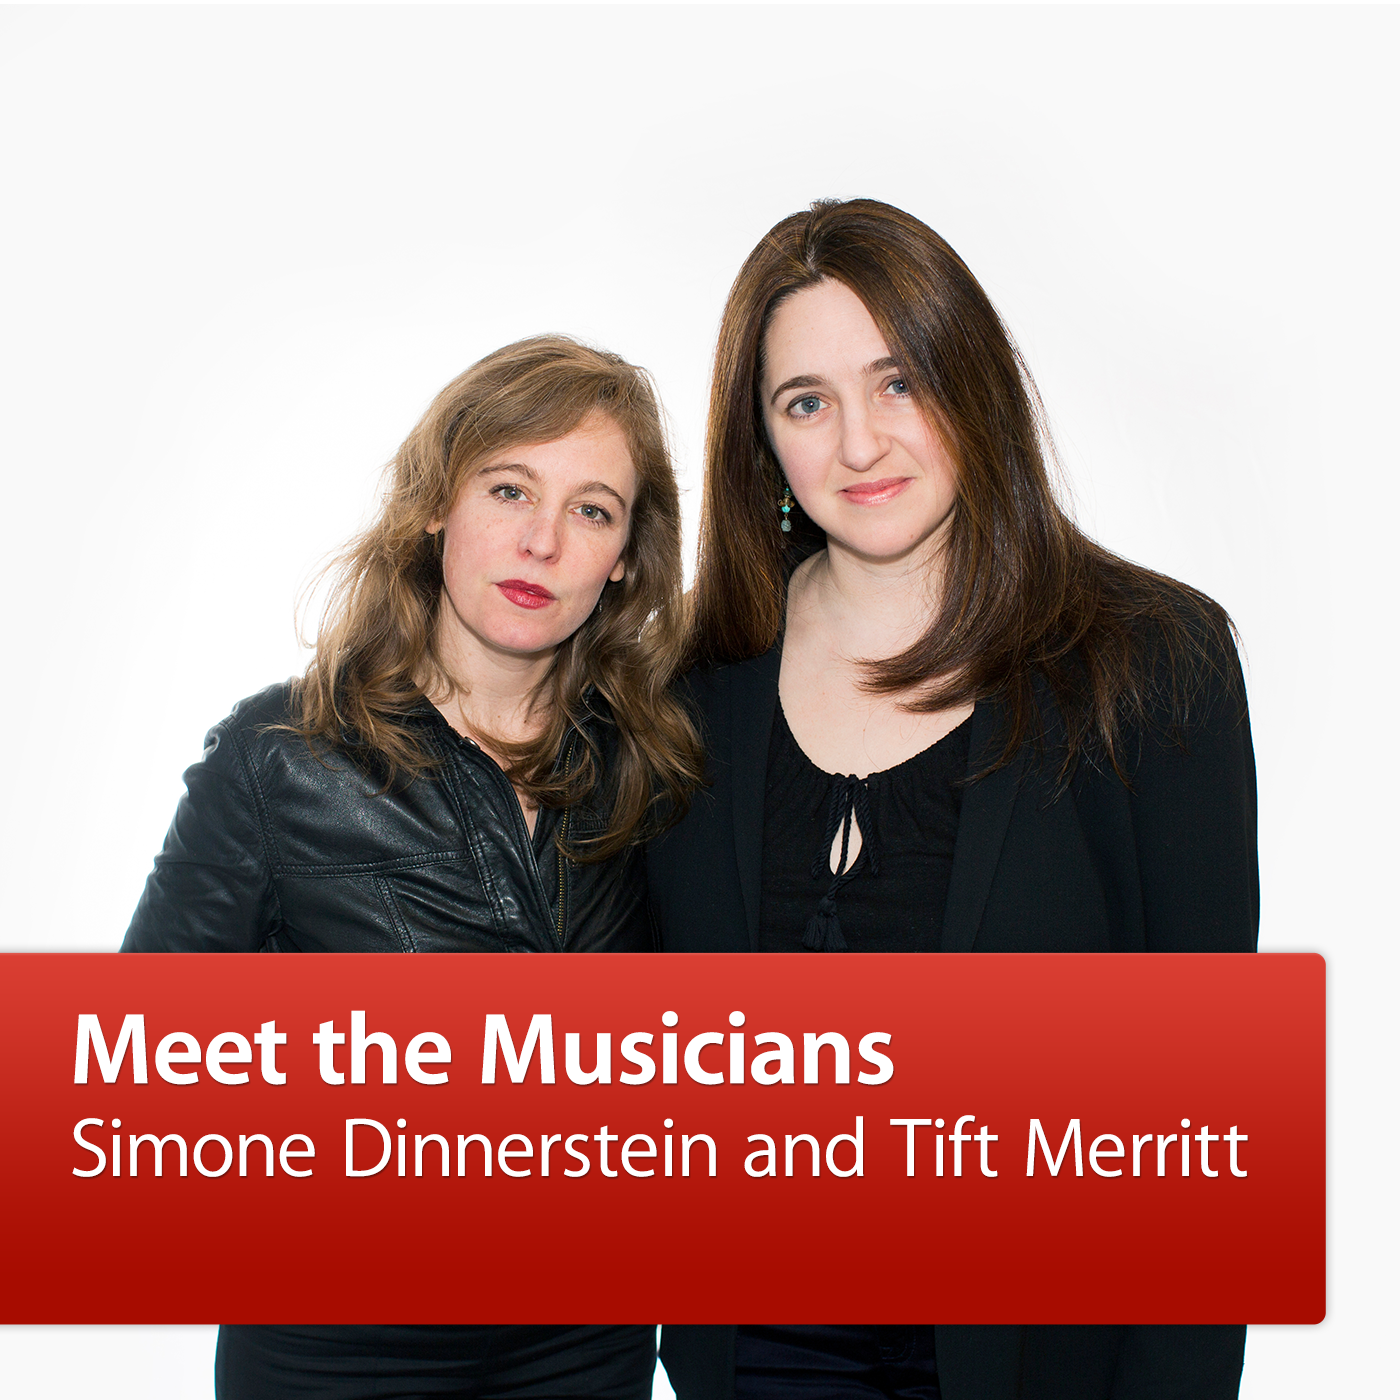 Simone Dinnerstein and Tift Merritt: Meet the Musicians